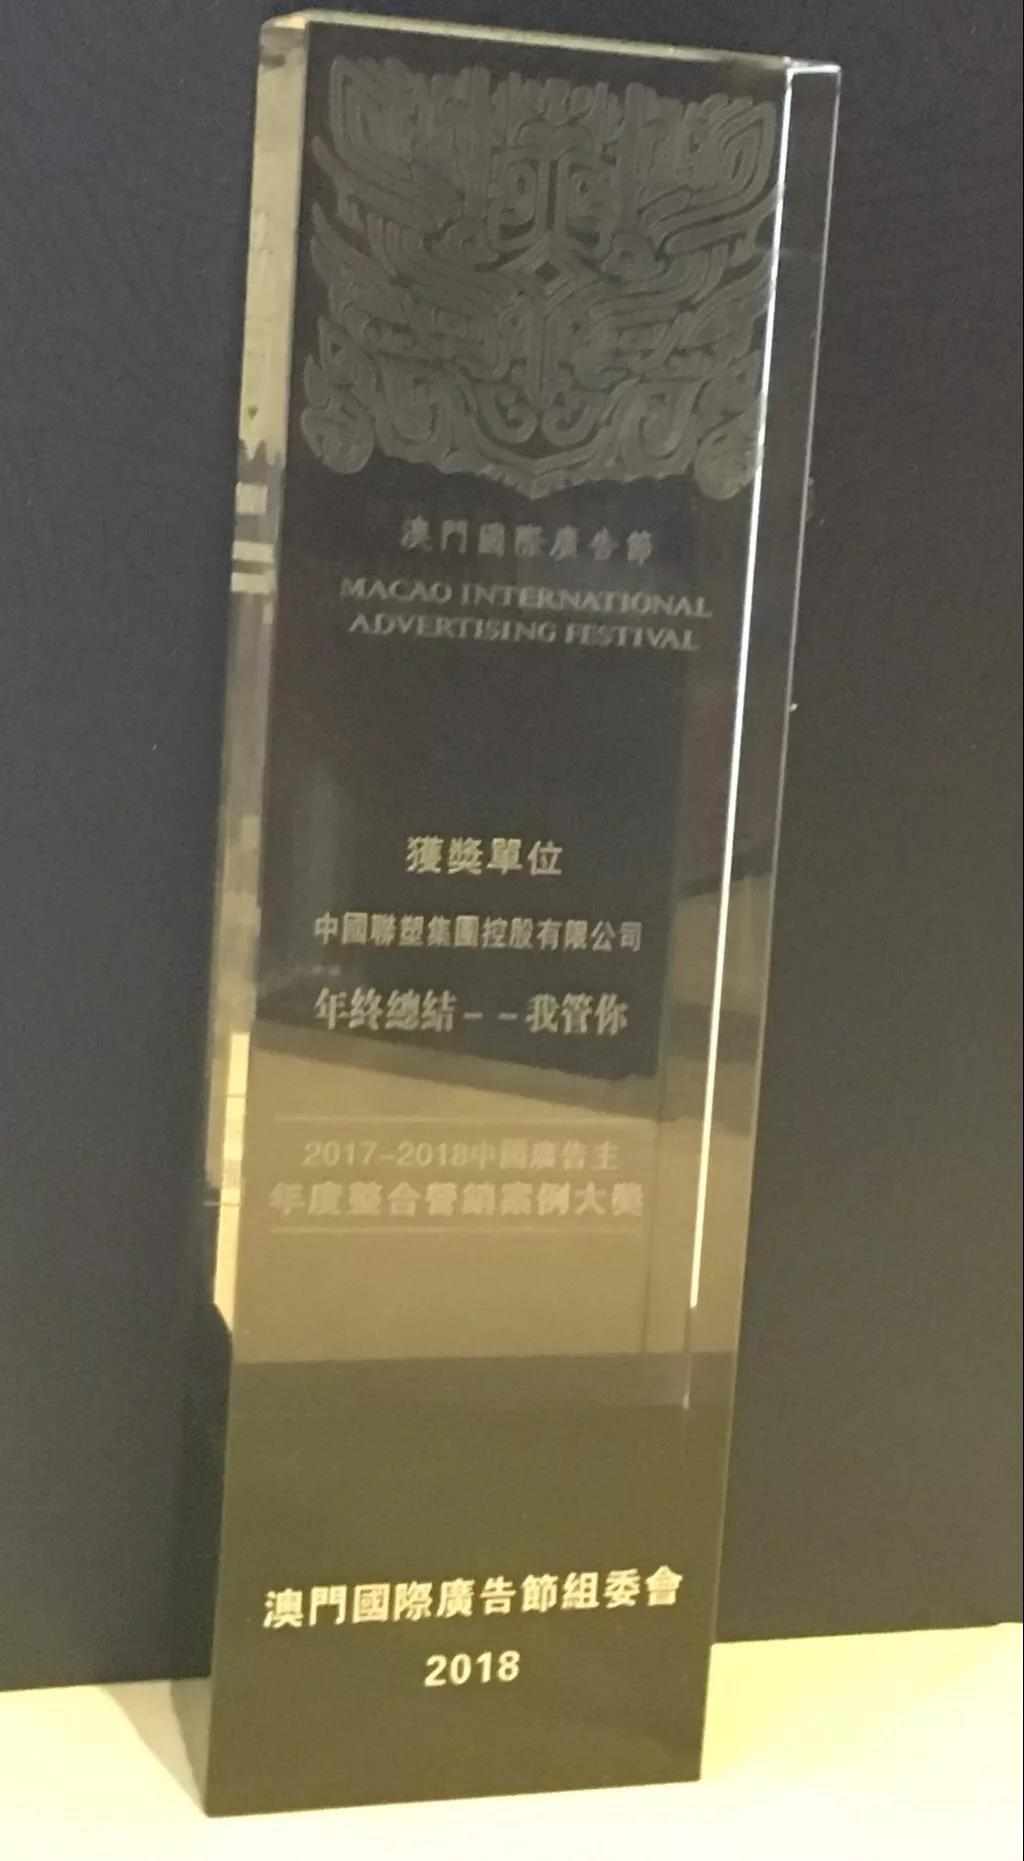 Lesso China Adertisers' Integrated Marketing Case of the Year 2017-2018